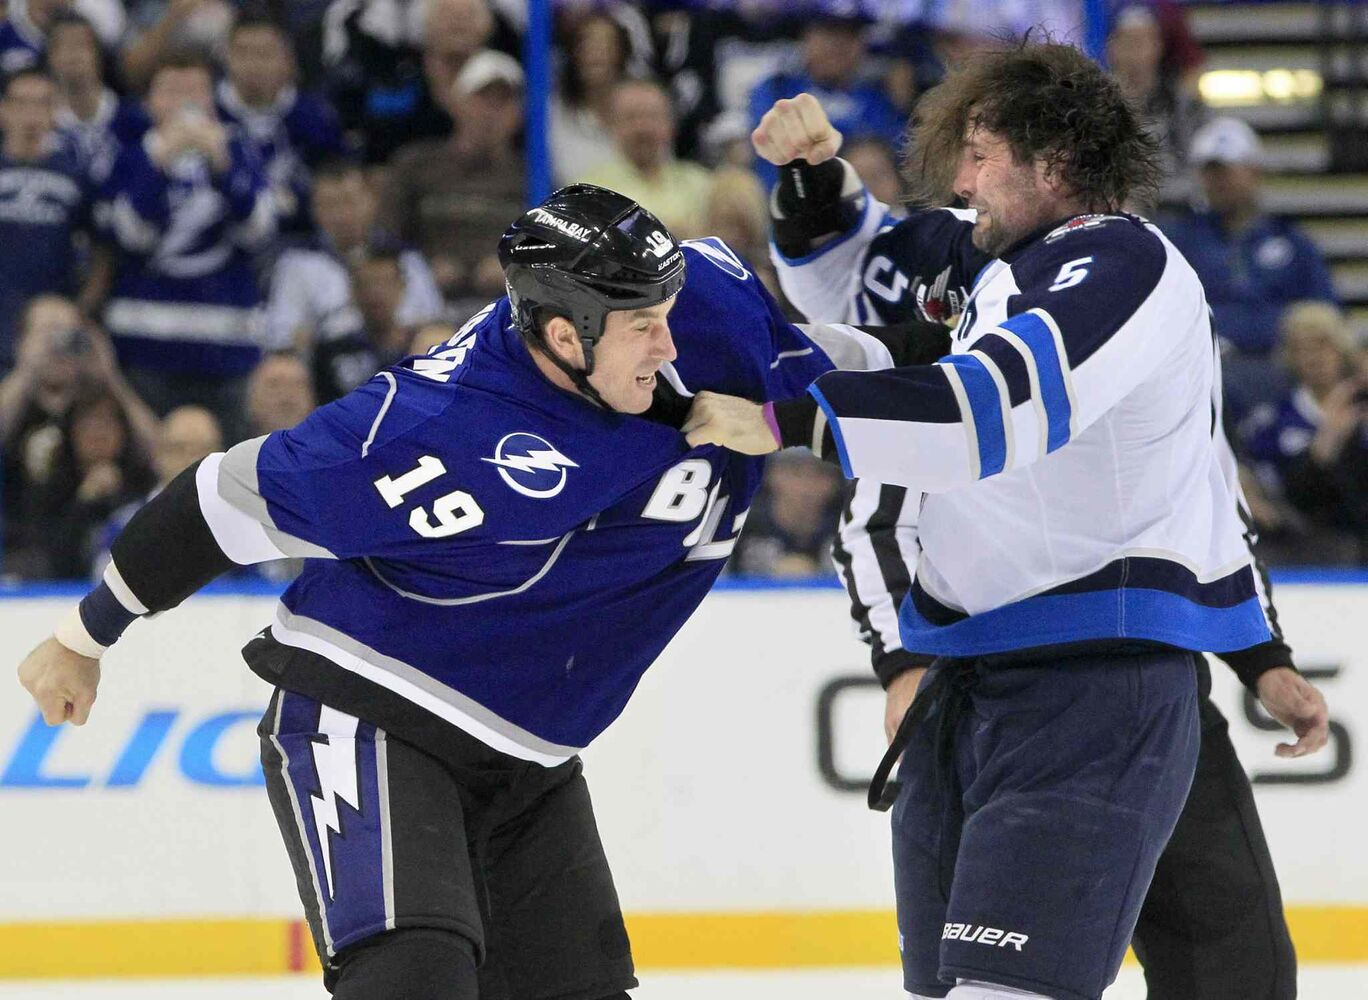 The Tampa Bay Lightning's B.J. Crombeen (left) drops the gloves with the Winnipeg Jets defenceman Mark Stuart during the first period. (Dirk Shadd / Tampa Bay Times / MCT)